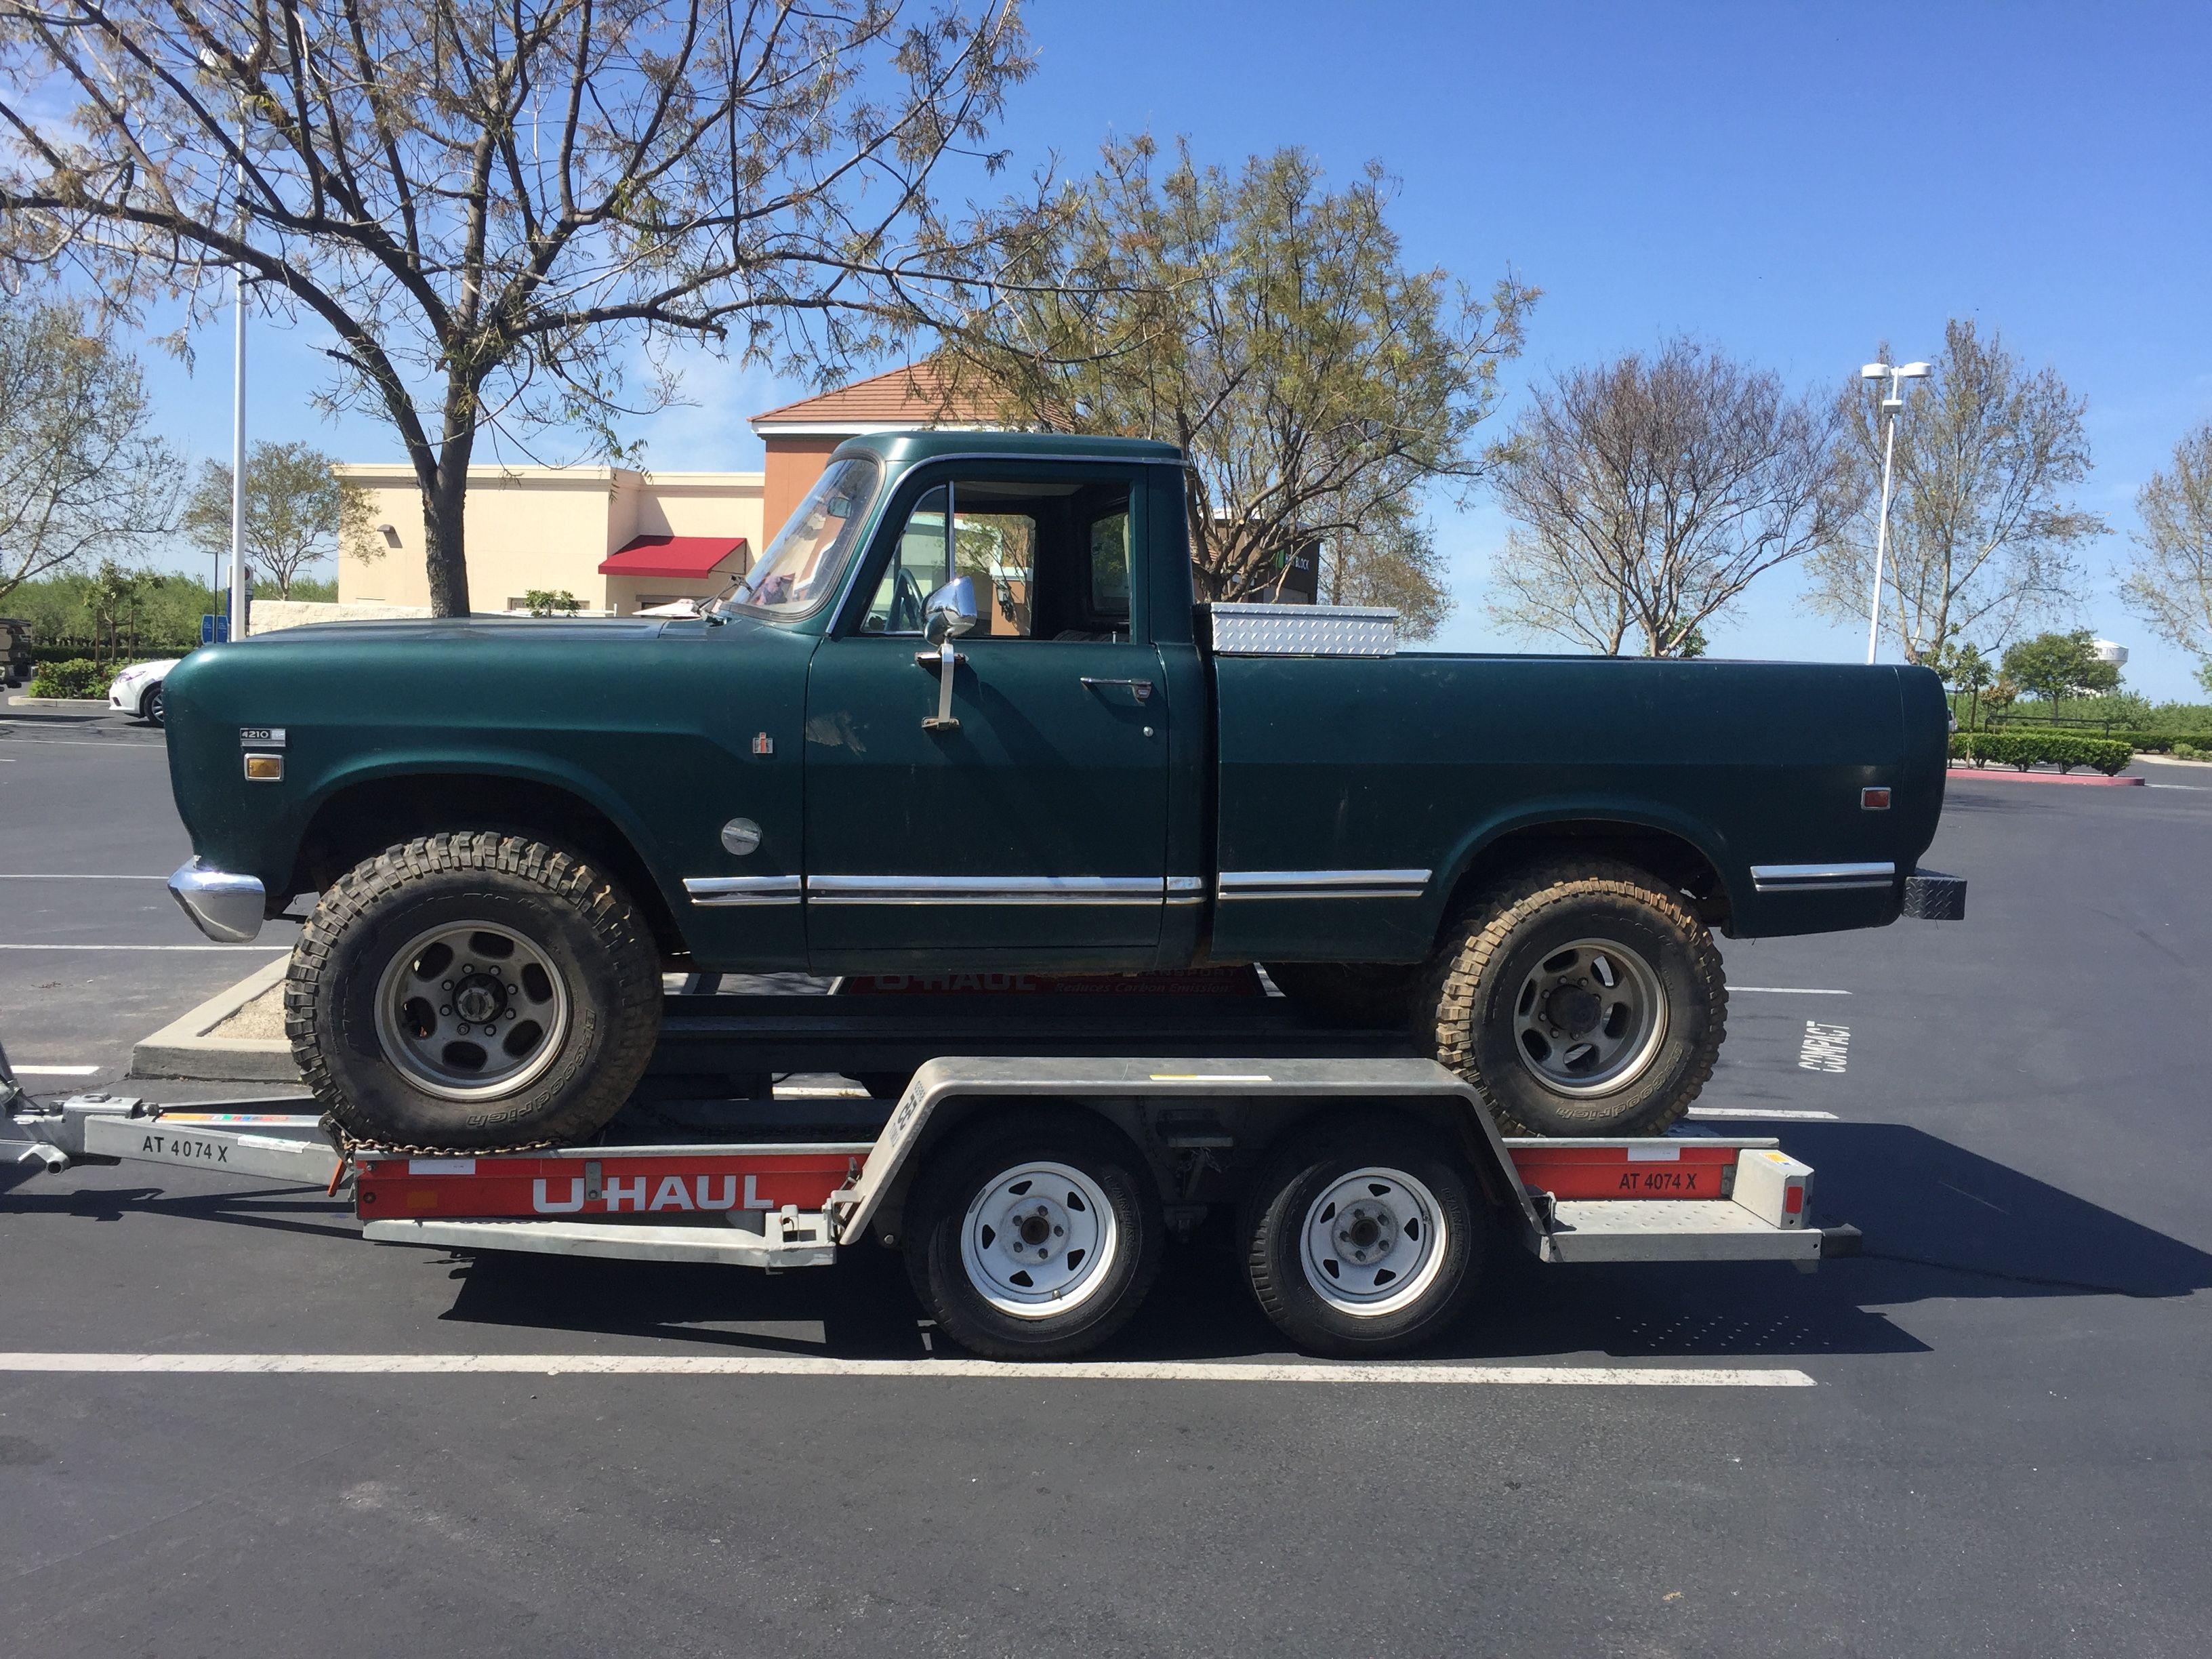 1973 IH 1210, 3/4 ton, Short-bed Pickup, 4x4, 345, Automatic, 8 lug